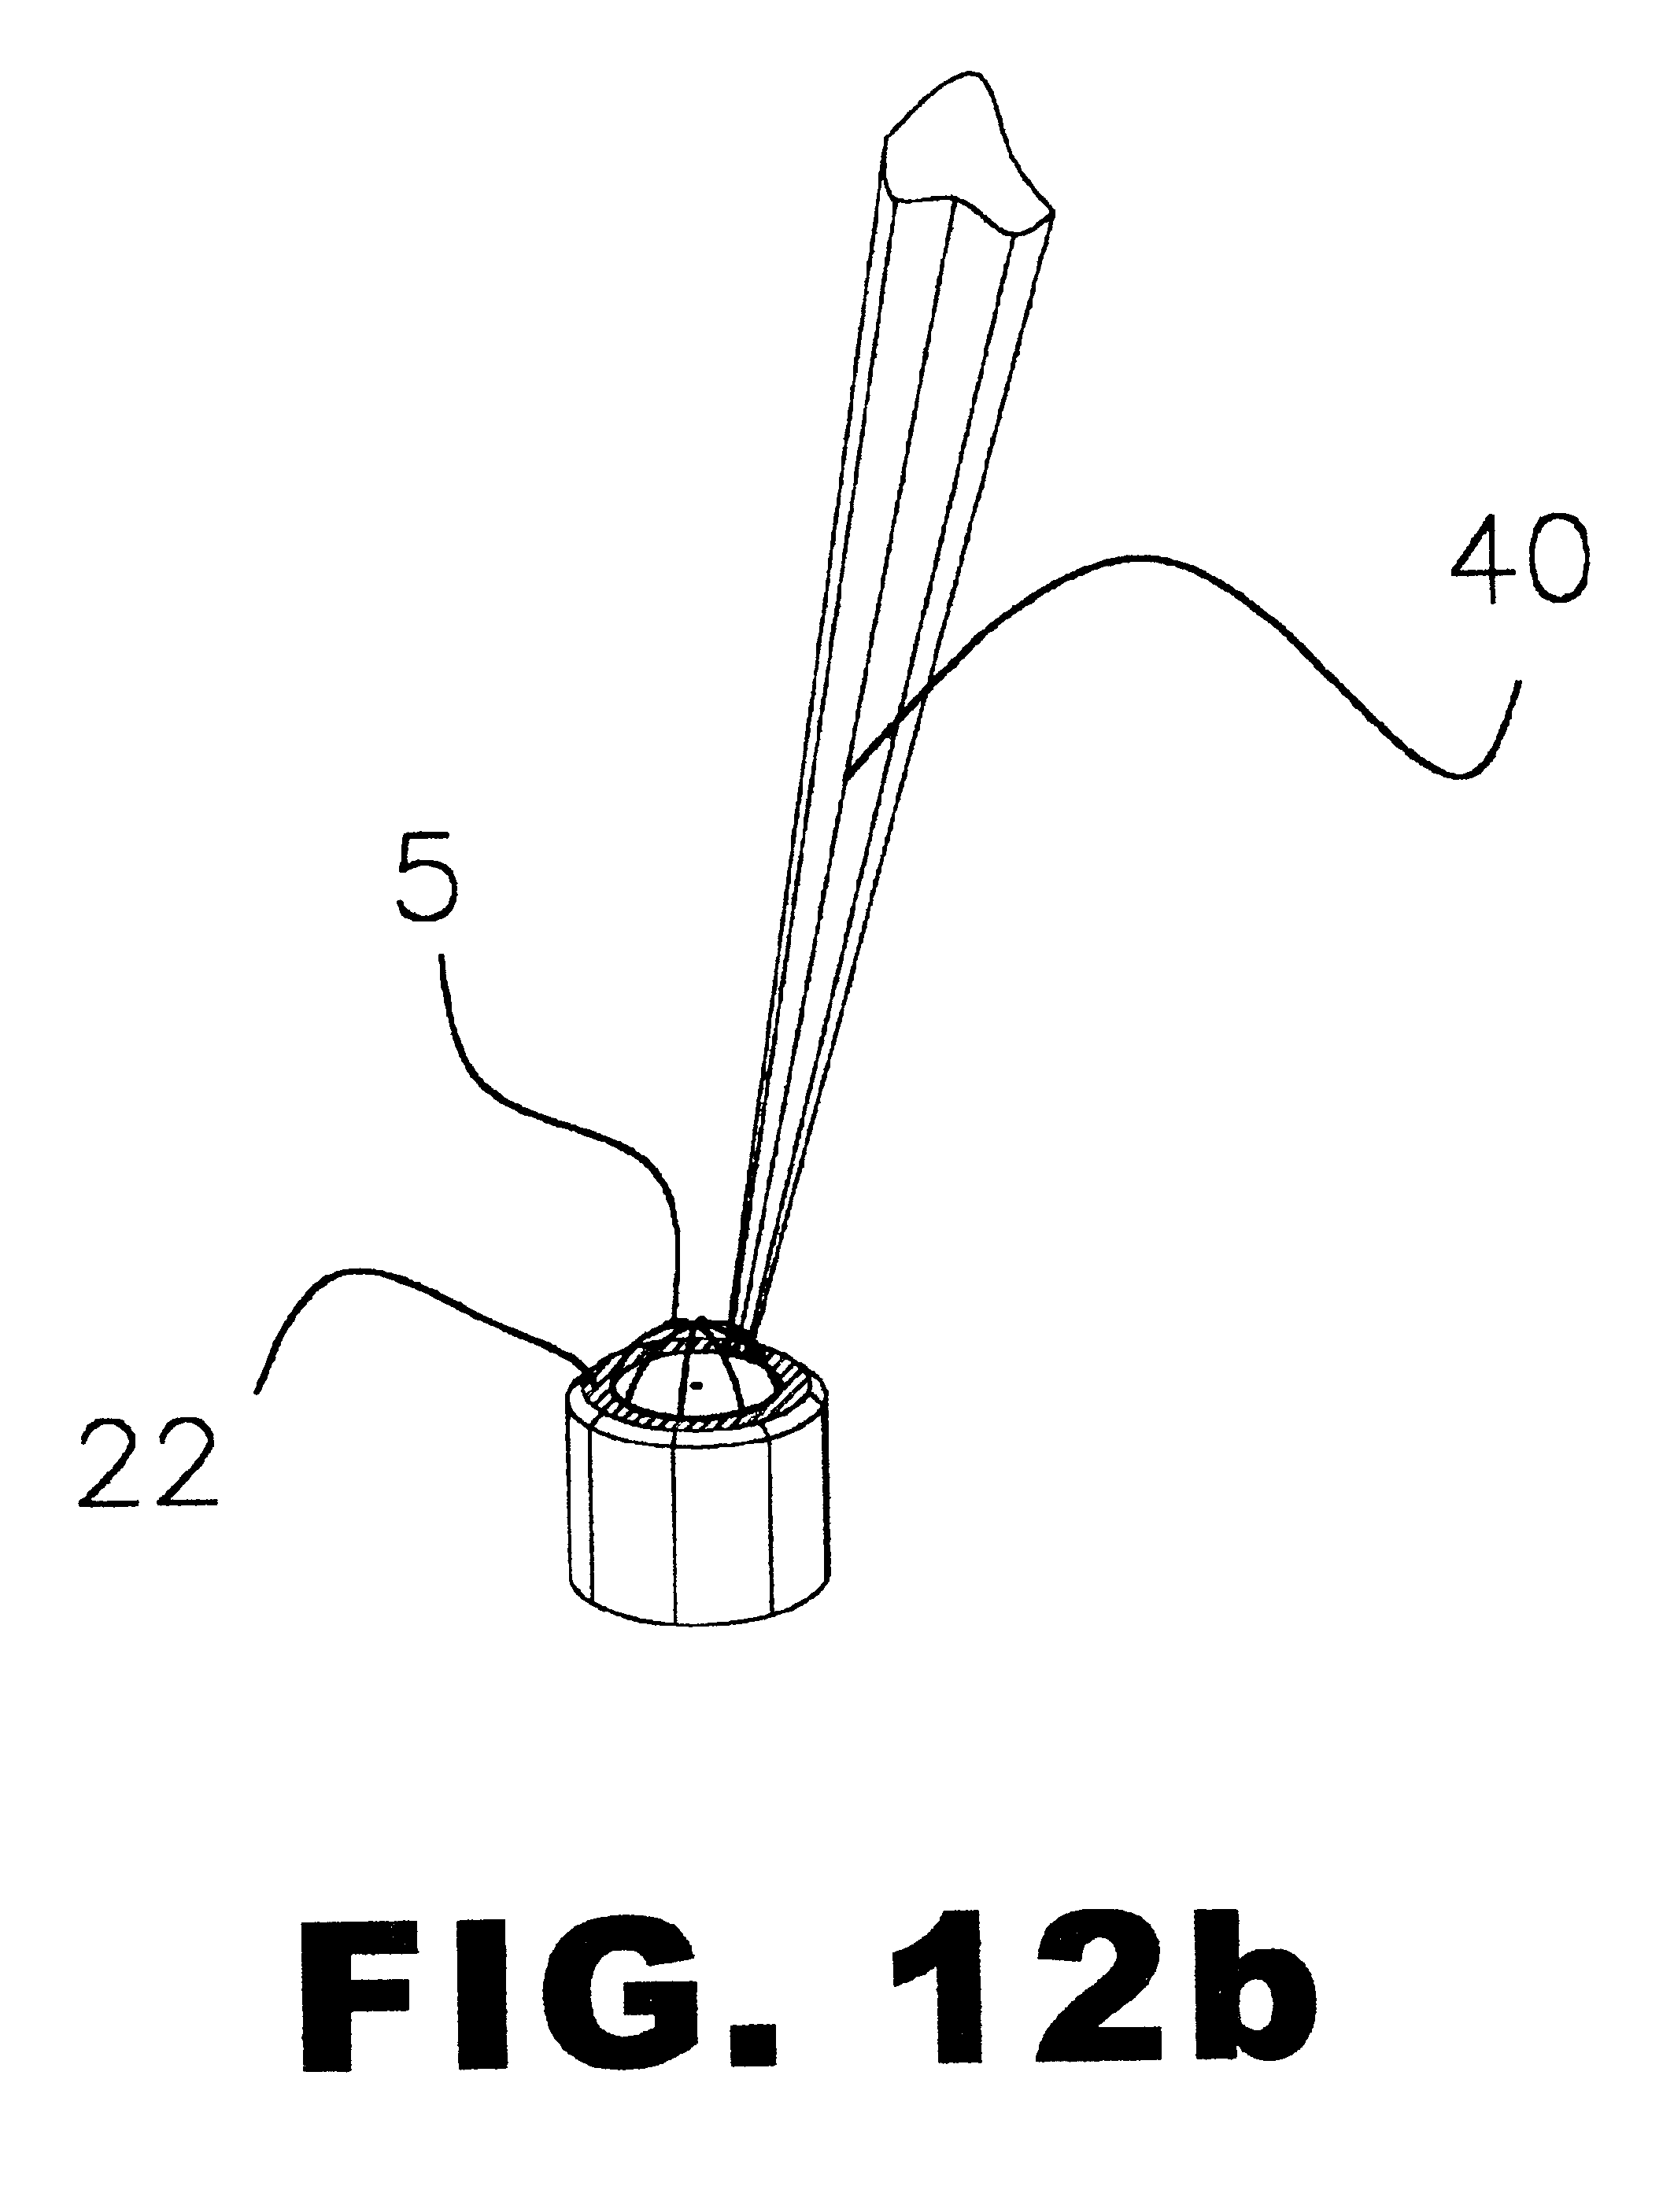 patent us6809826 - liquid photometer using surface tension to contain sample